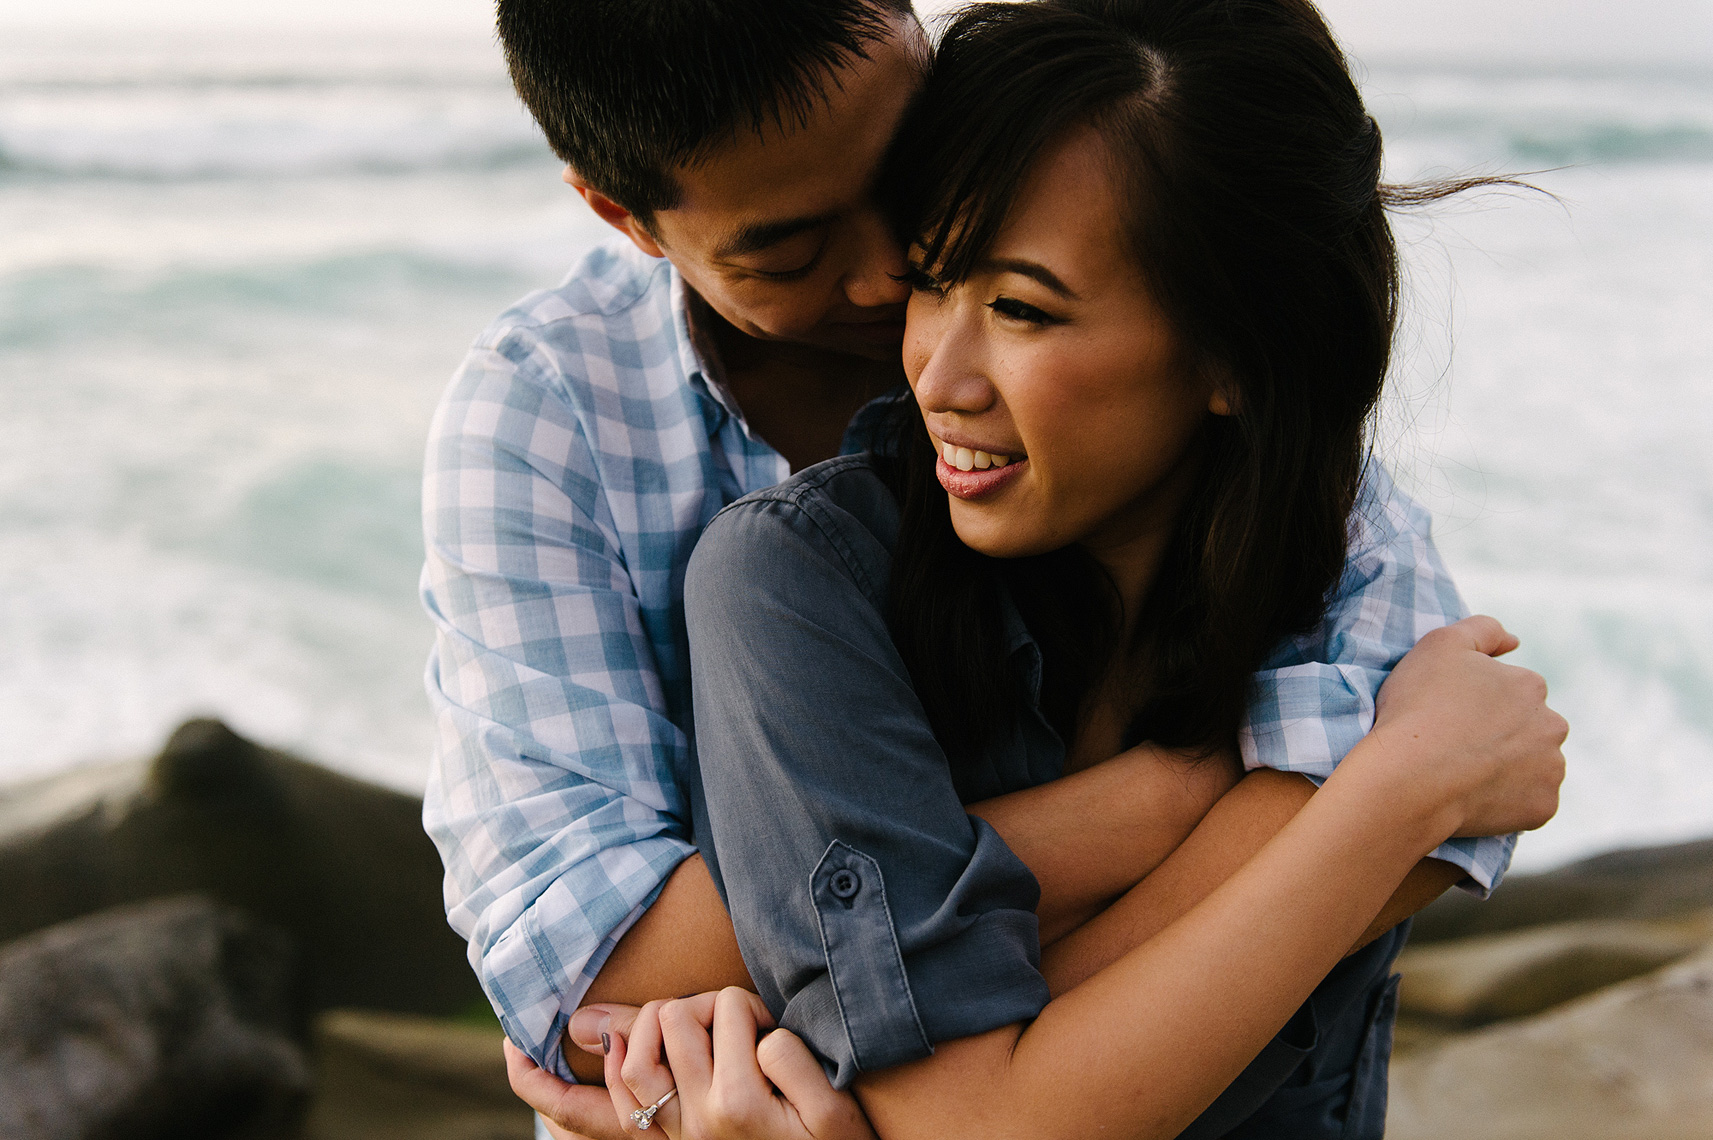 09-la-jolla-engagement-photography.jpg